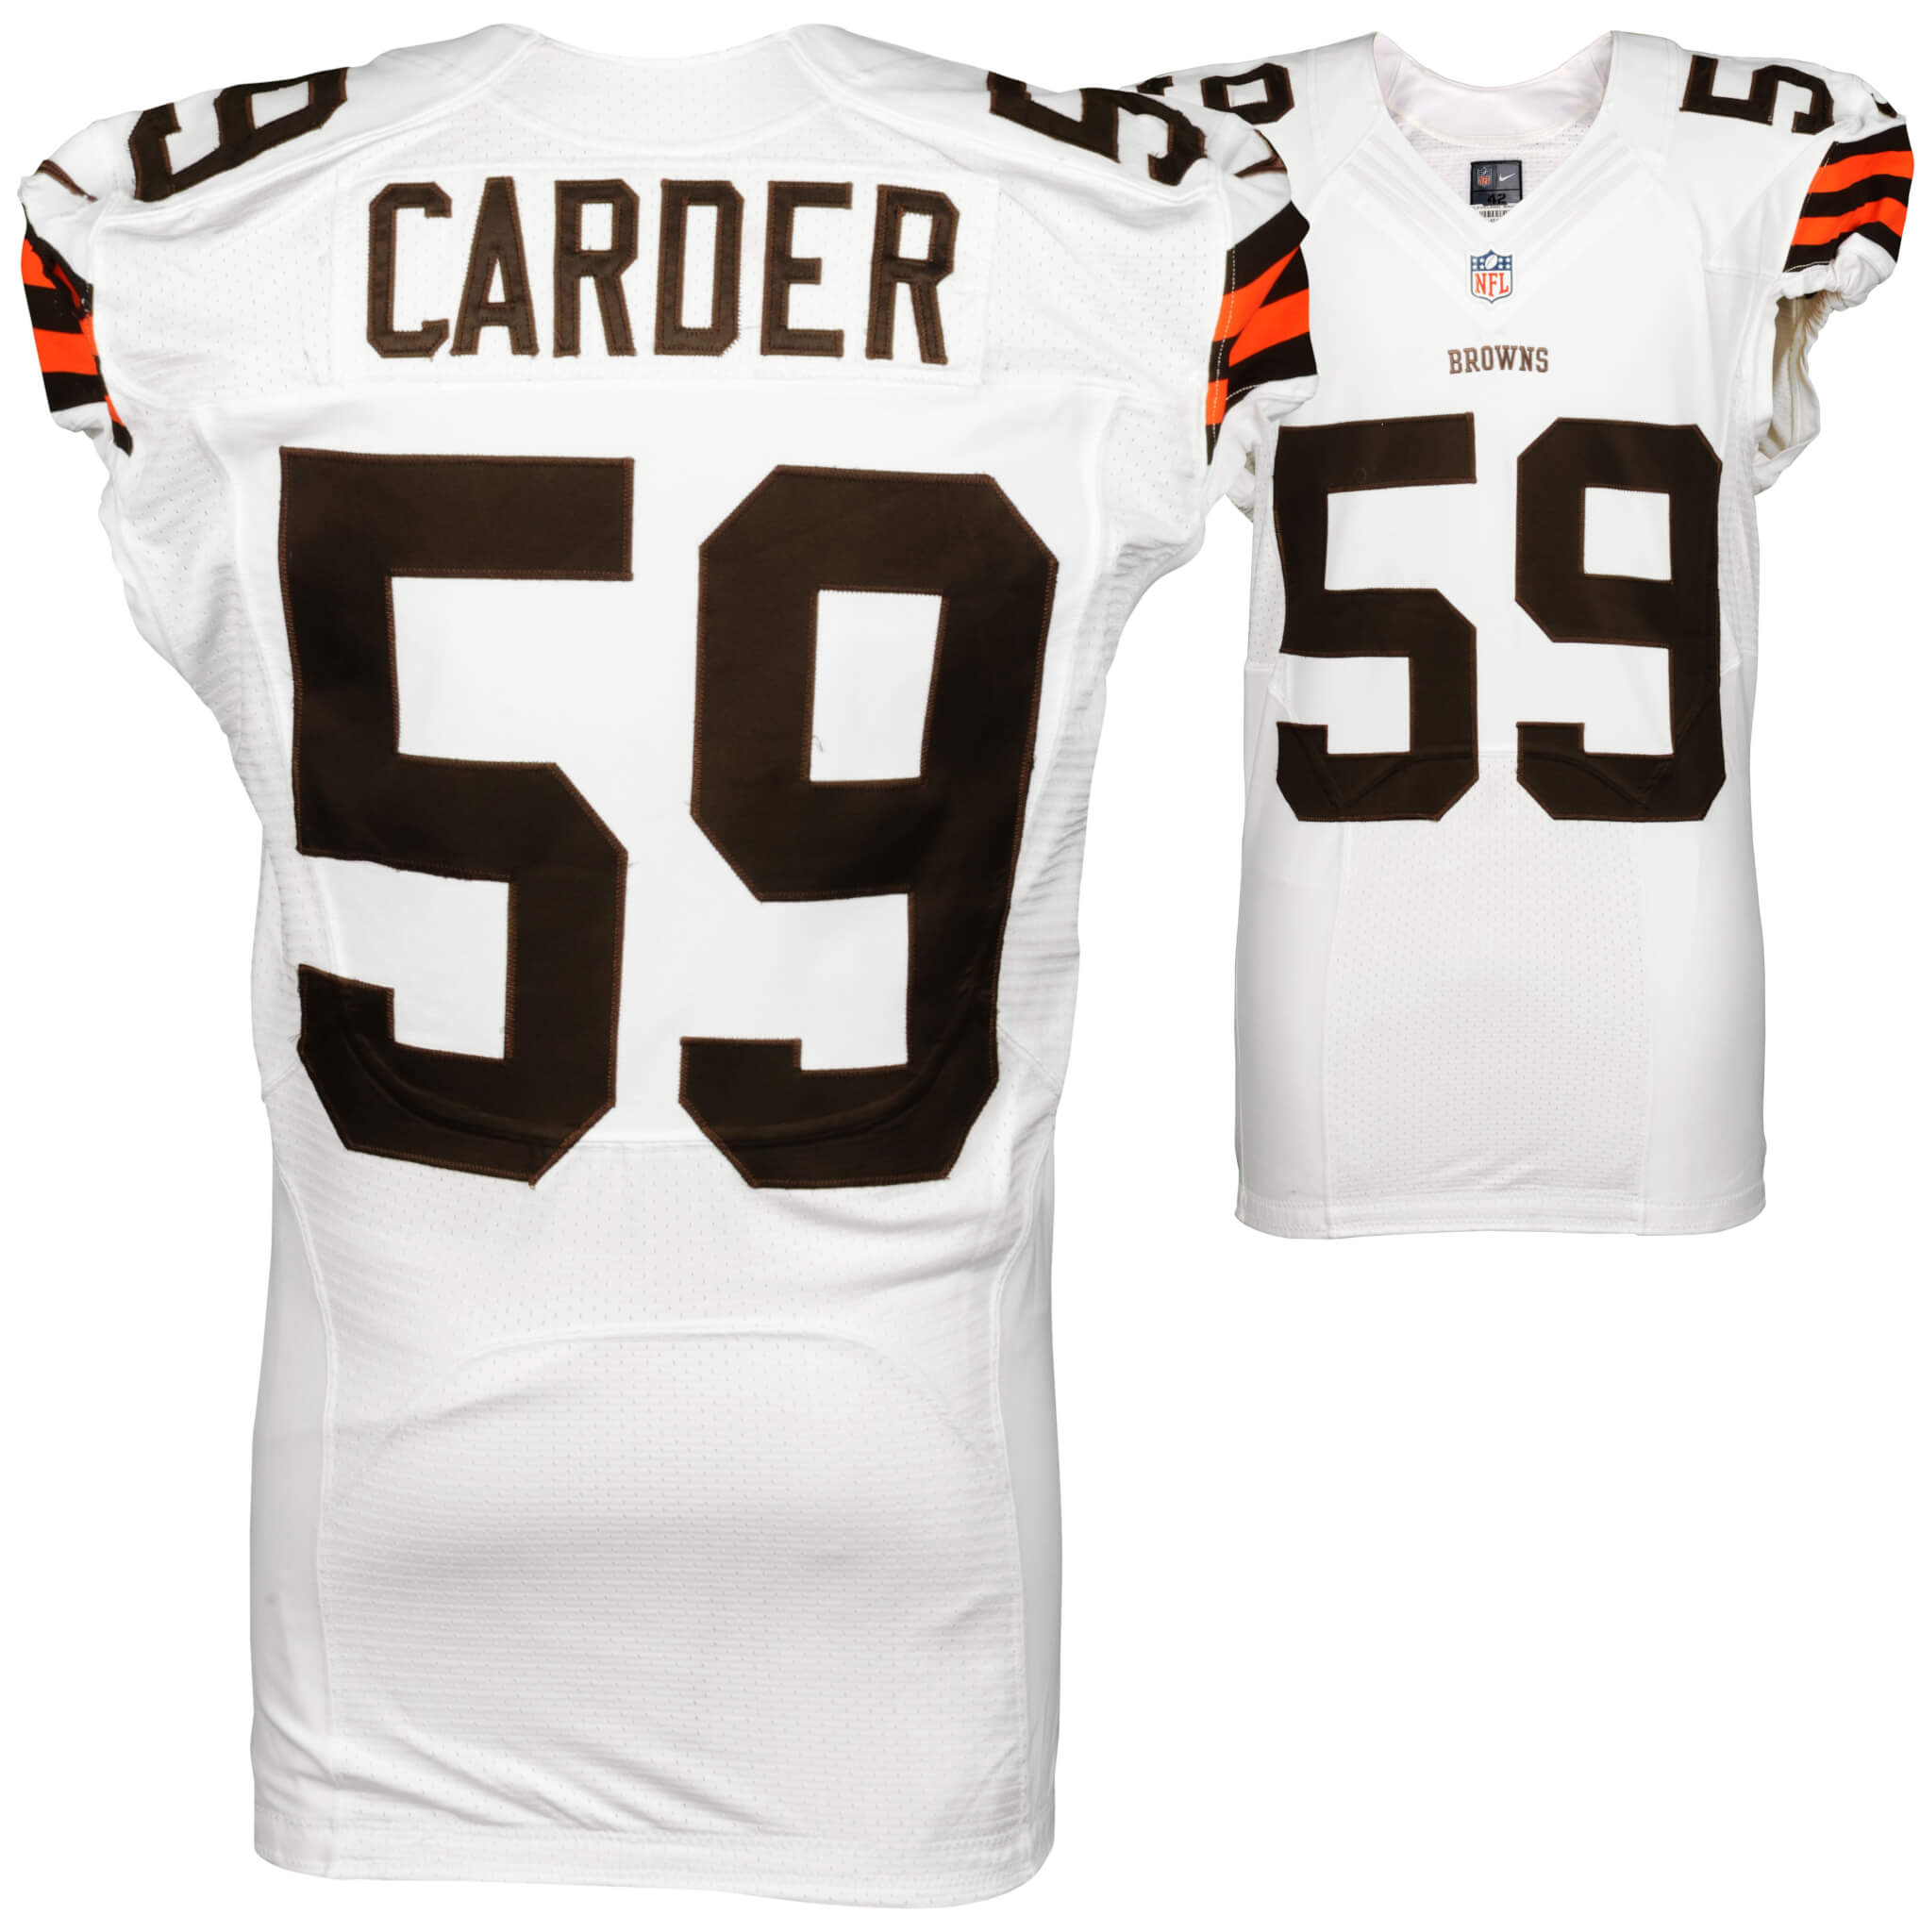 2014 Cleveland Browns Tank Carder Game Used White #59 Jersey (NFL Team COA)